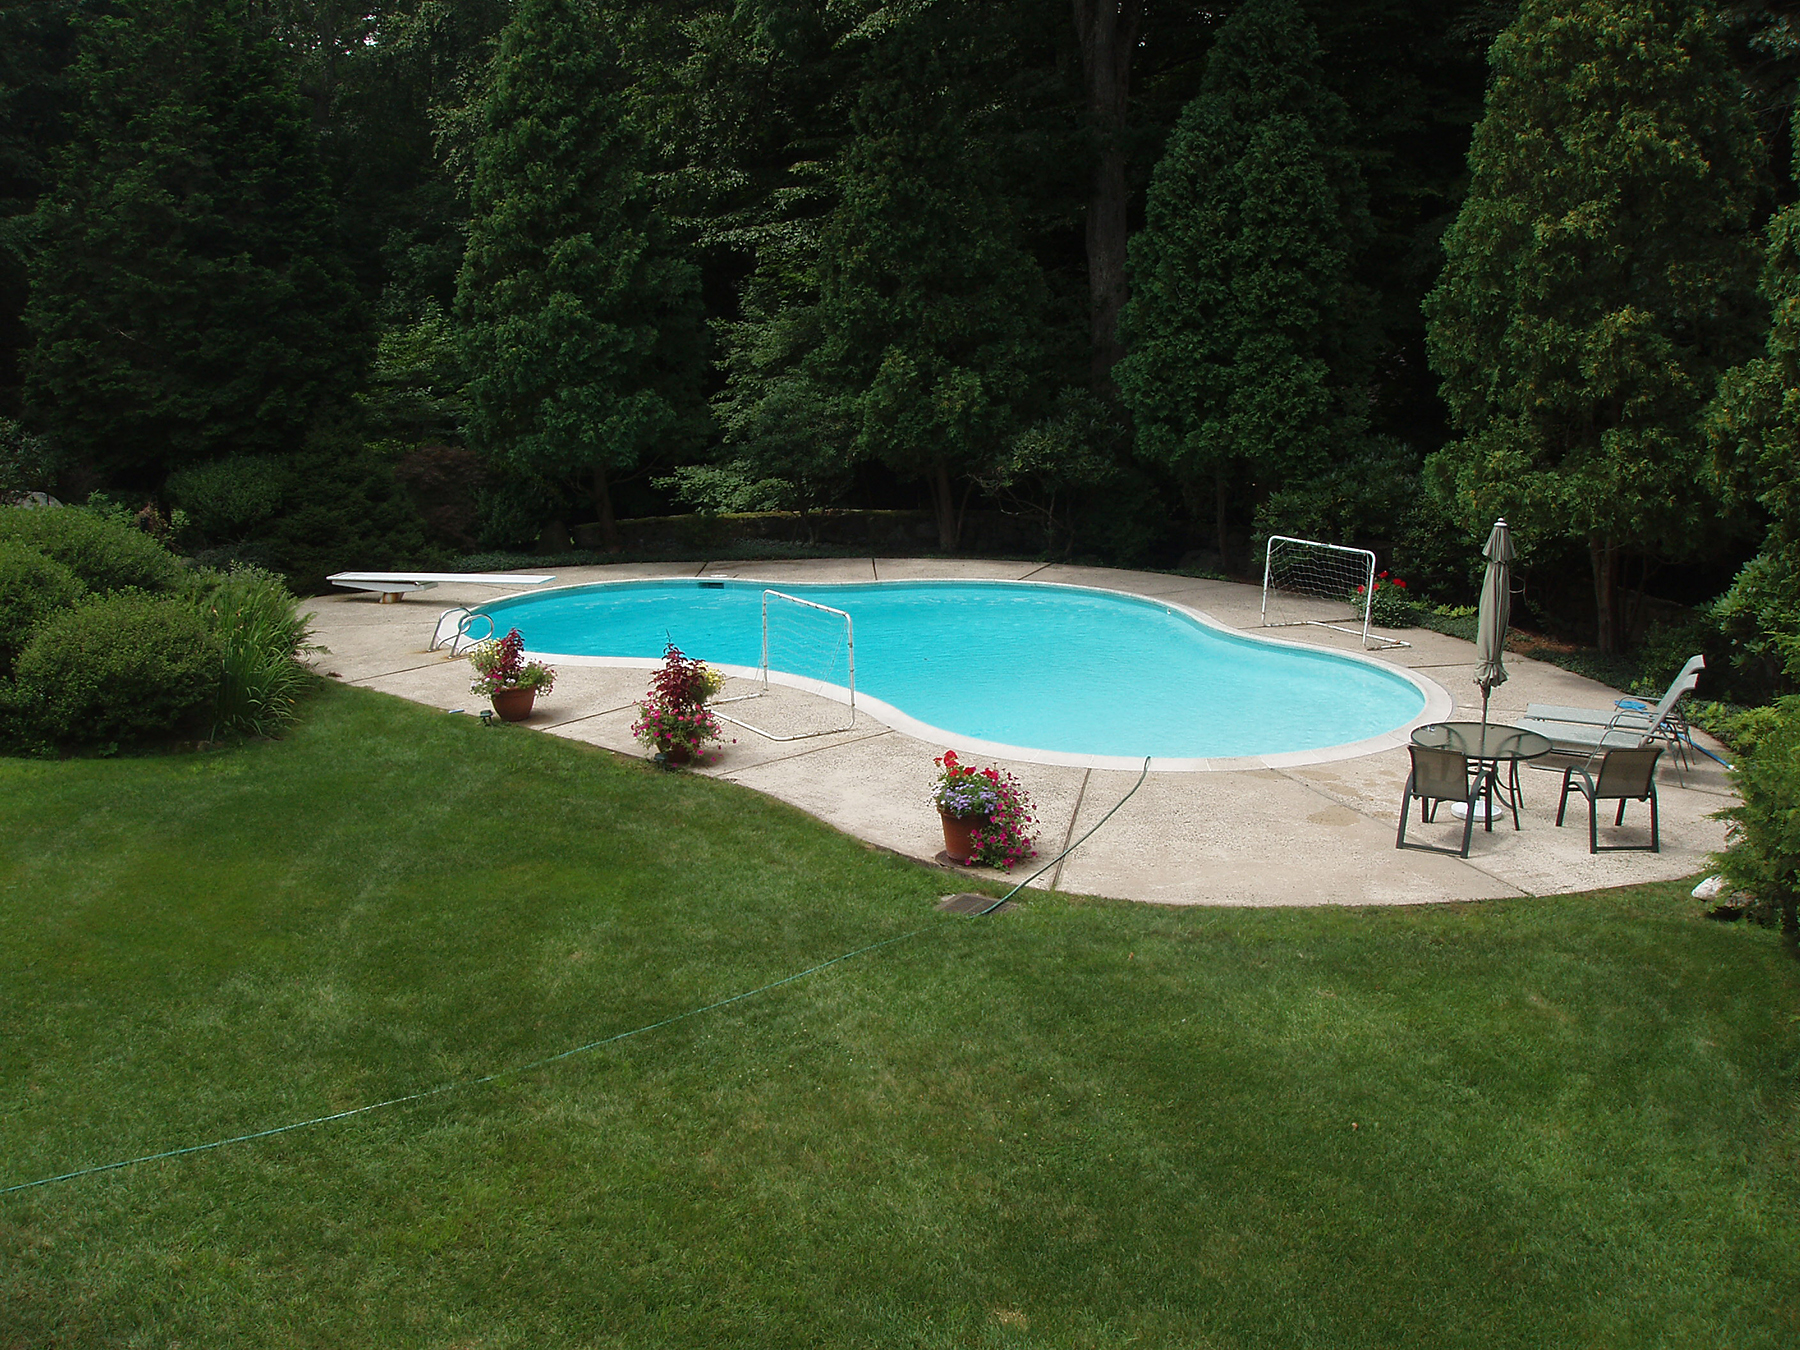 New Canaan CT : Before